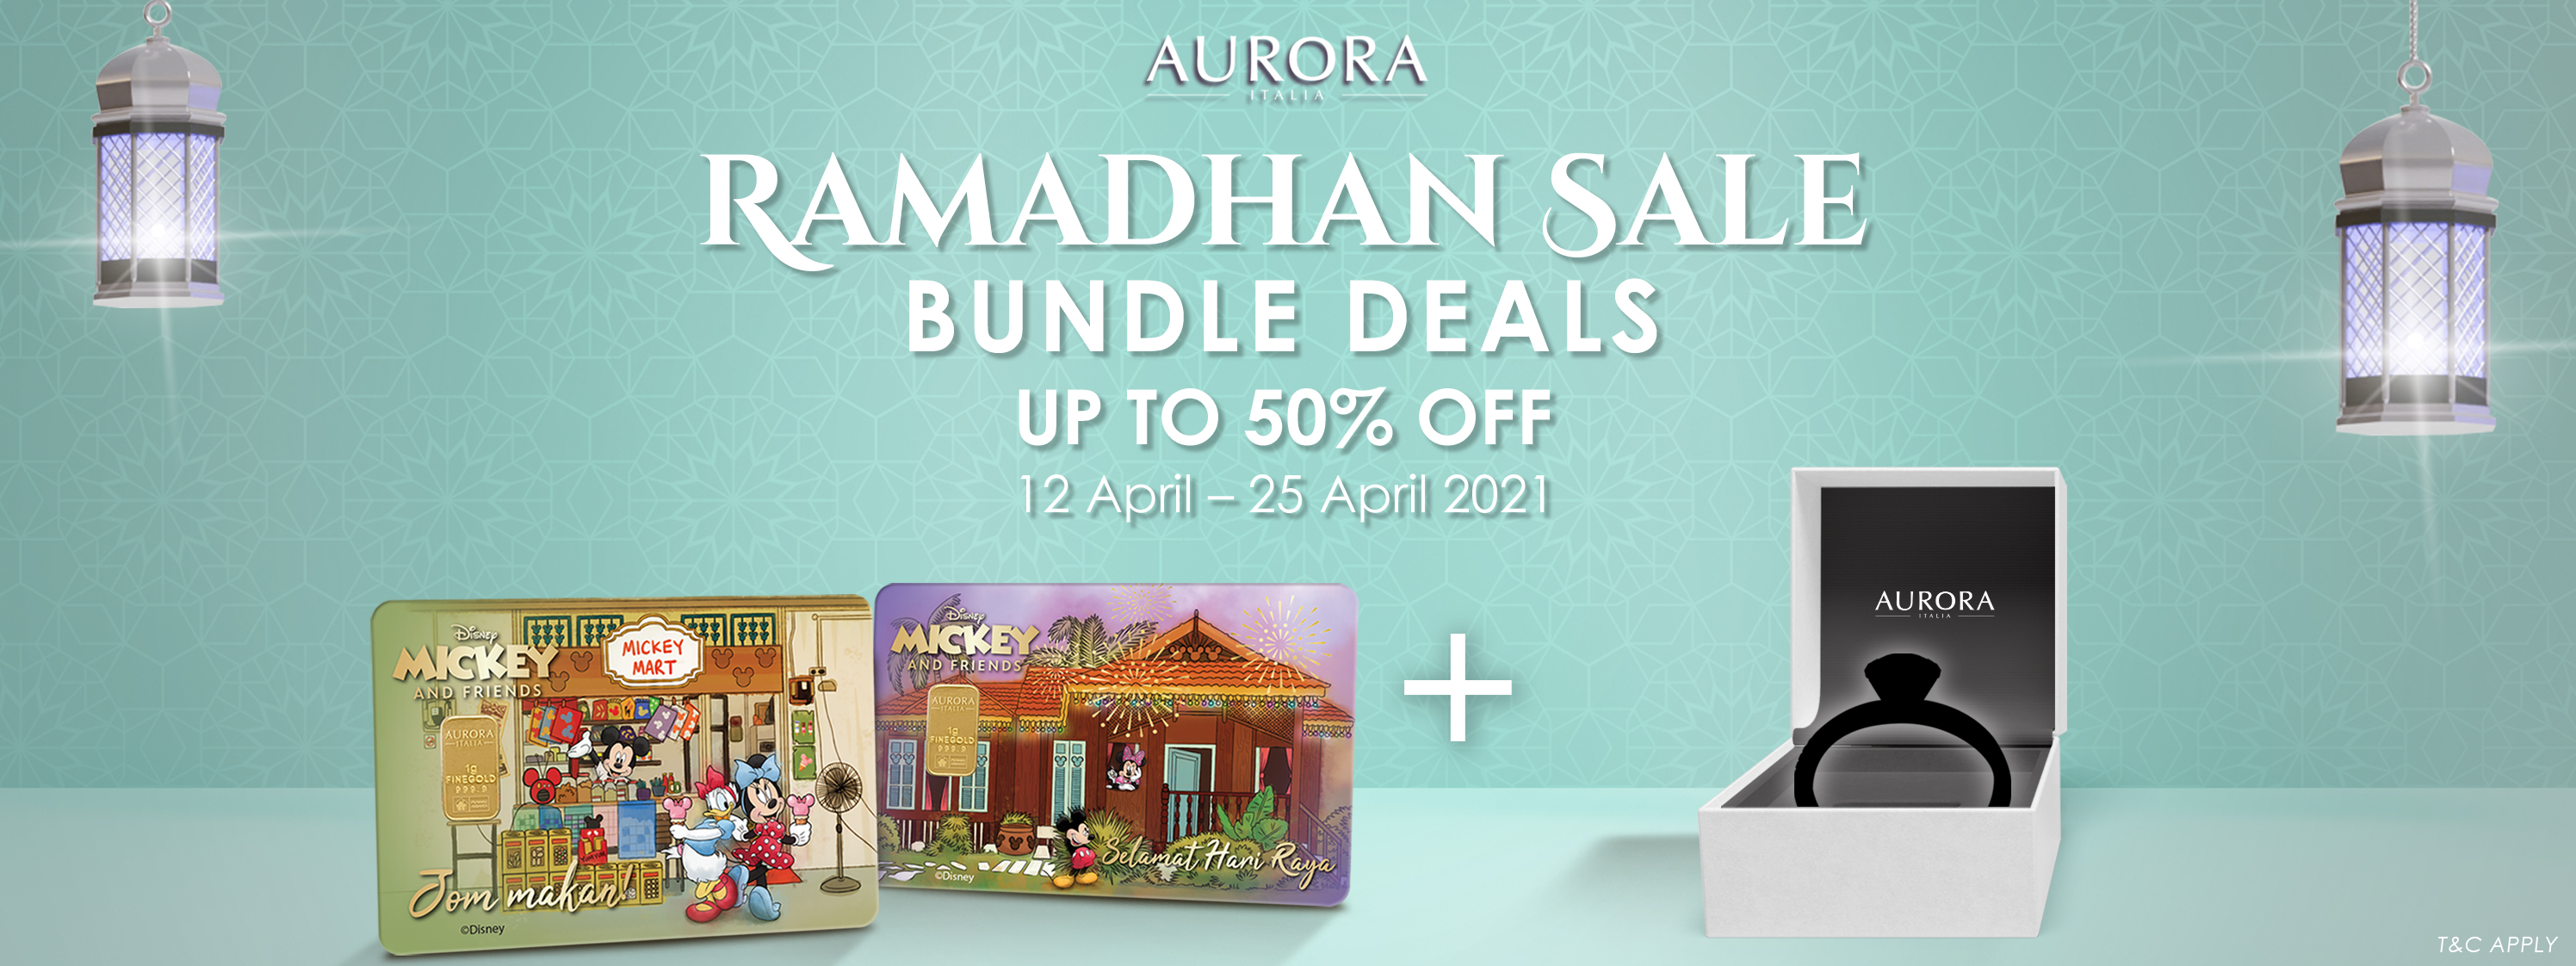 Ramadhan bundle